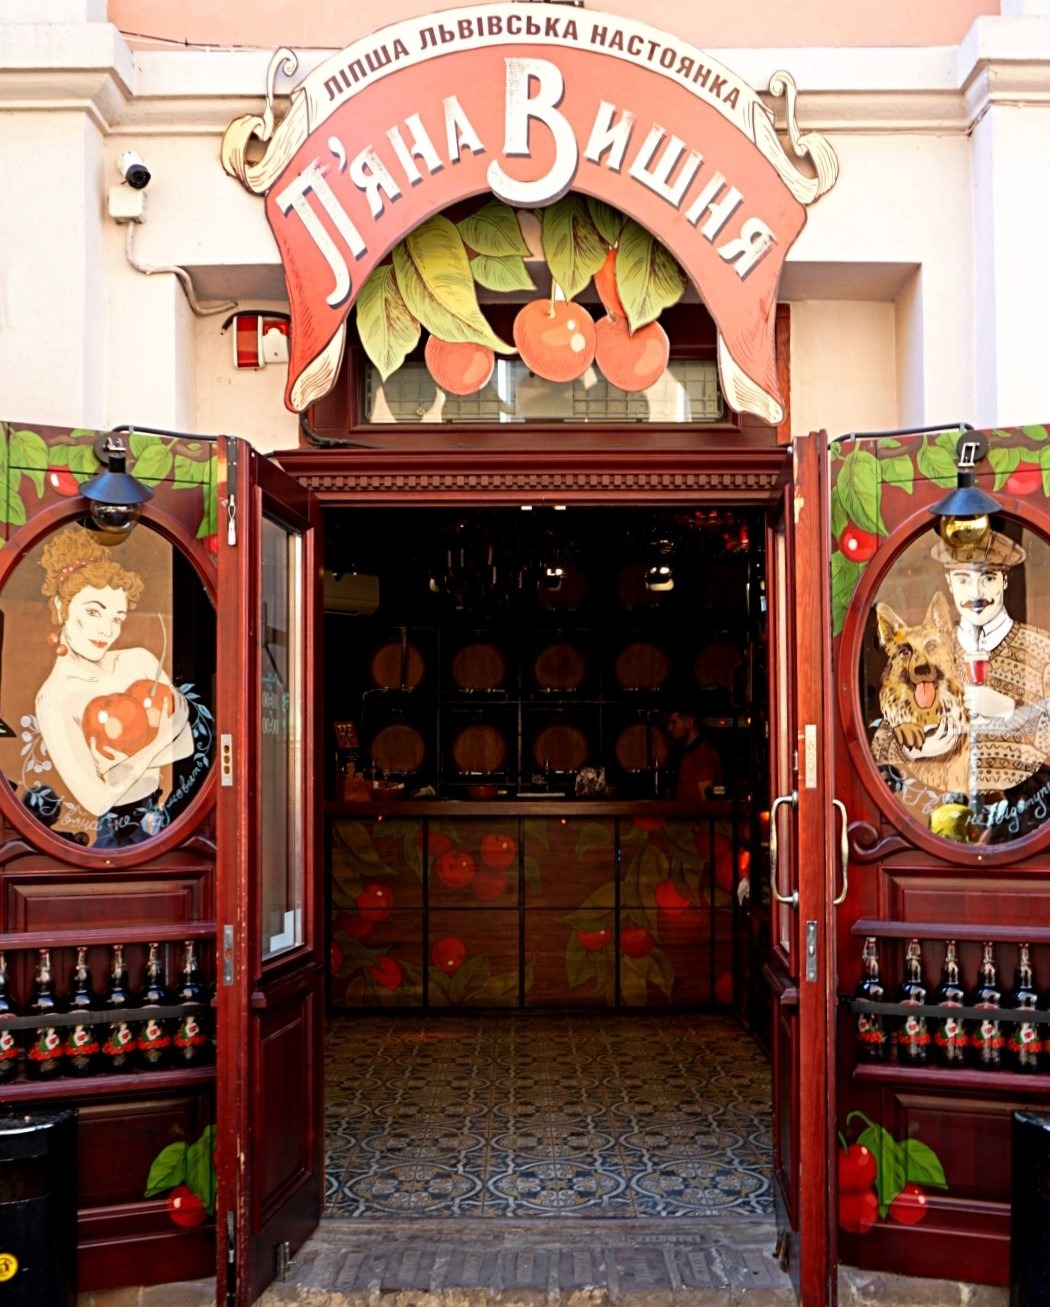 The entrance to the Drunken cherry